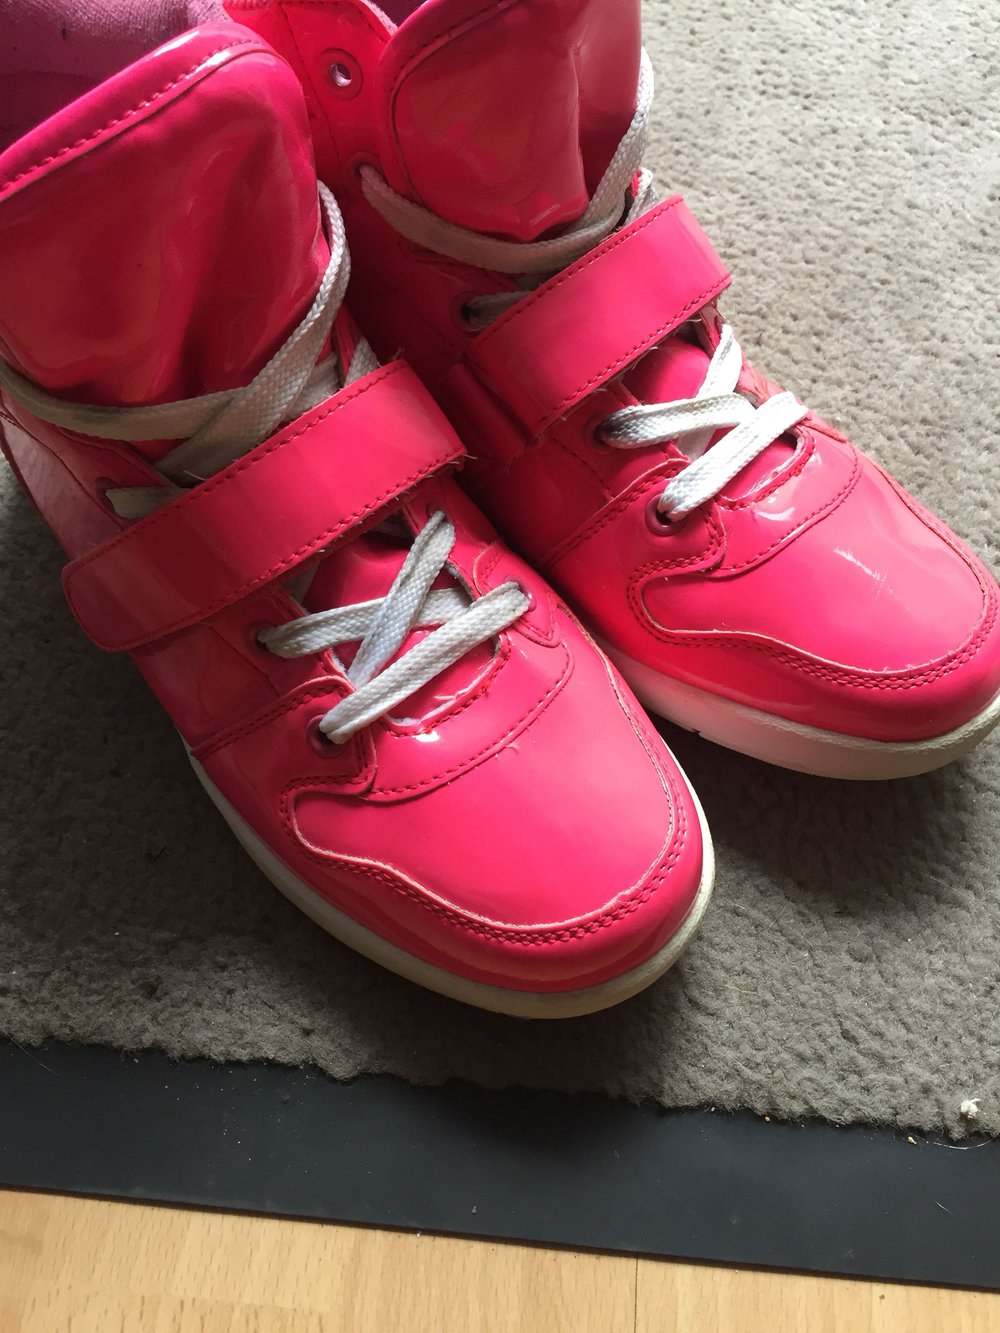 best website 612bb 76c3f Knallig Pinke Schuhe *_*